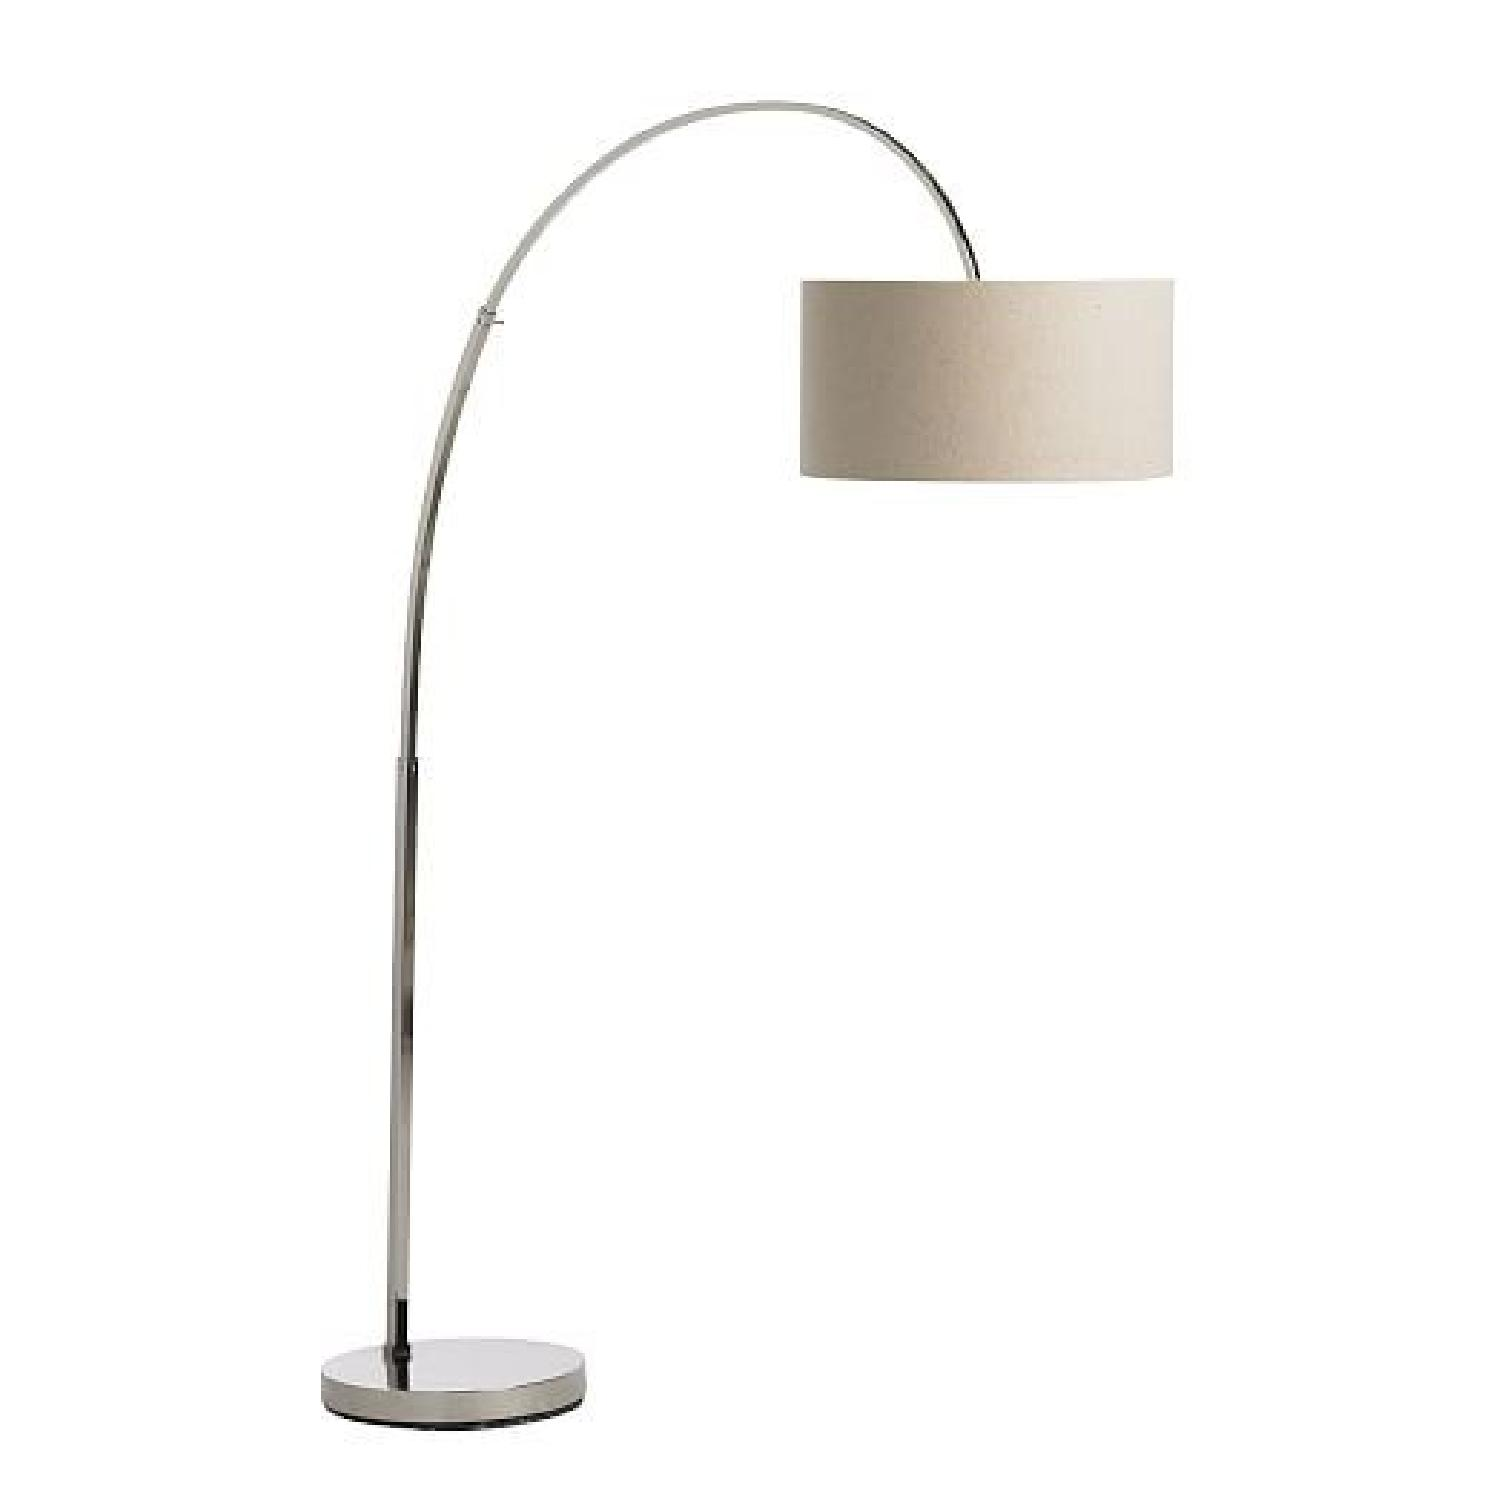 West elm overarching floor lamp in polished aptdeco west elm overarching floor lamp in polished nickelnatural aloadofball Gallery